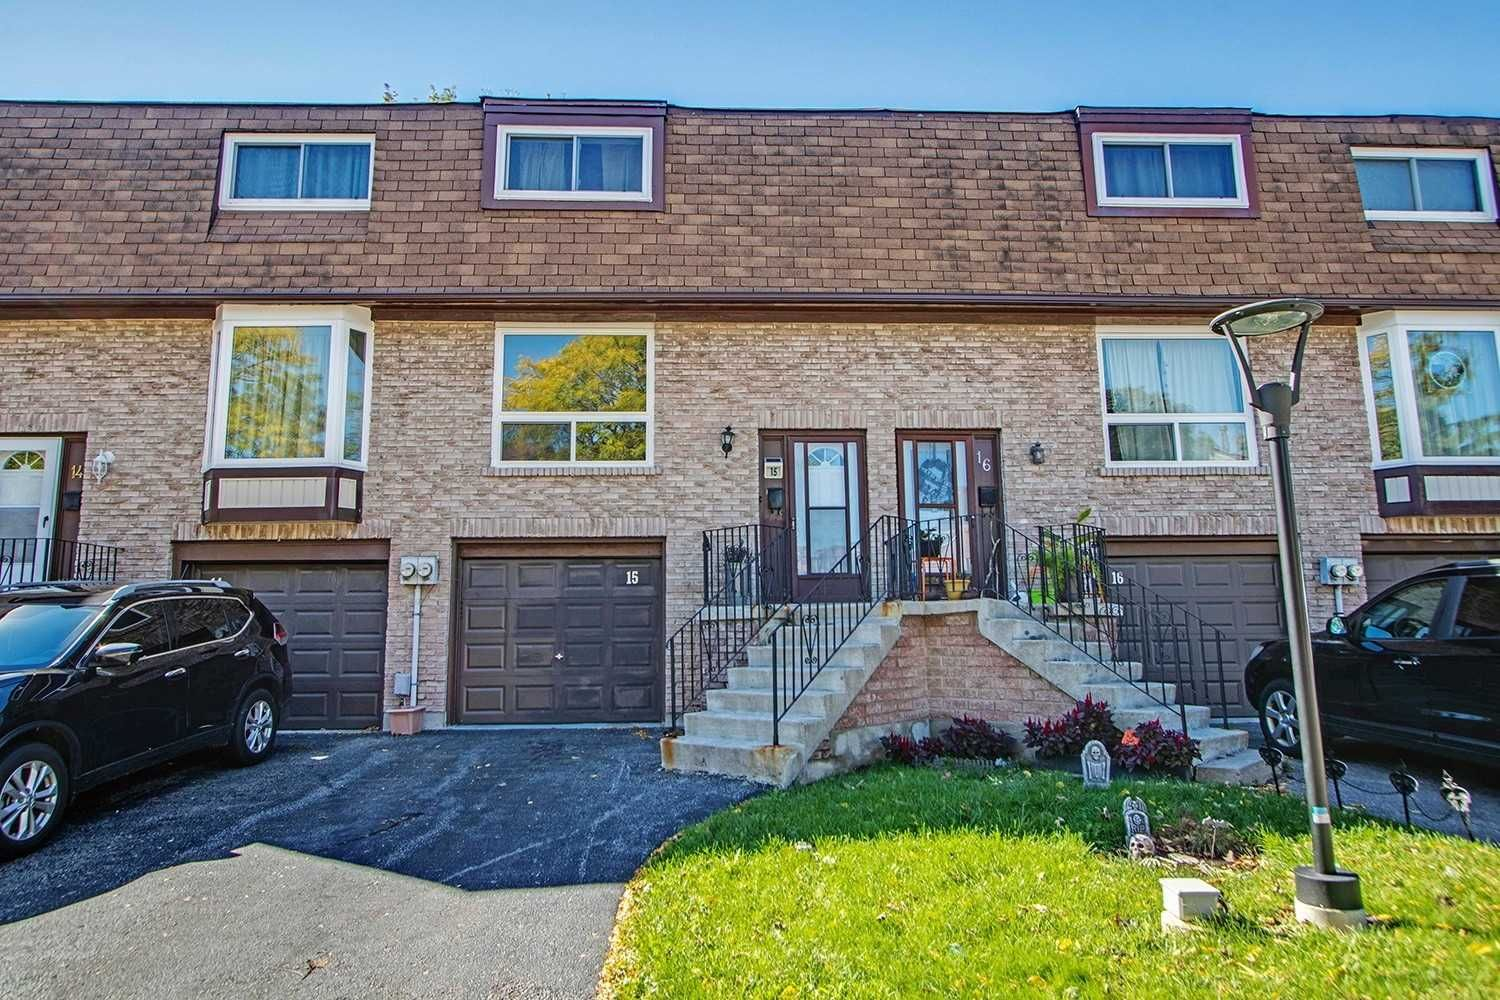 222 Pearson St. This condo townhouse at 222 Pearson Street Townhomes is located in O'Neill, Oshawa